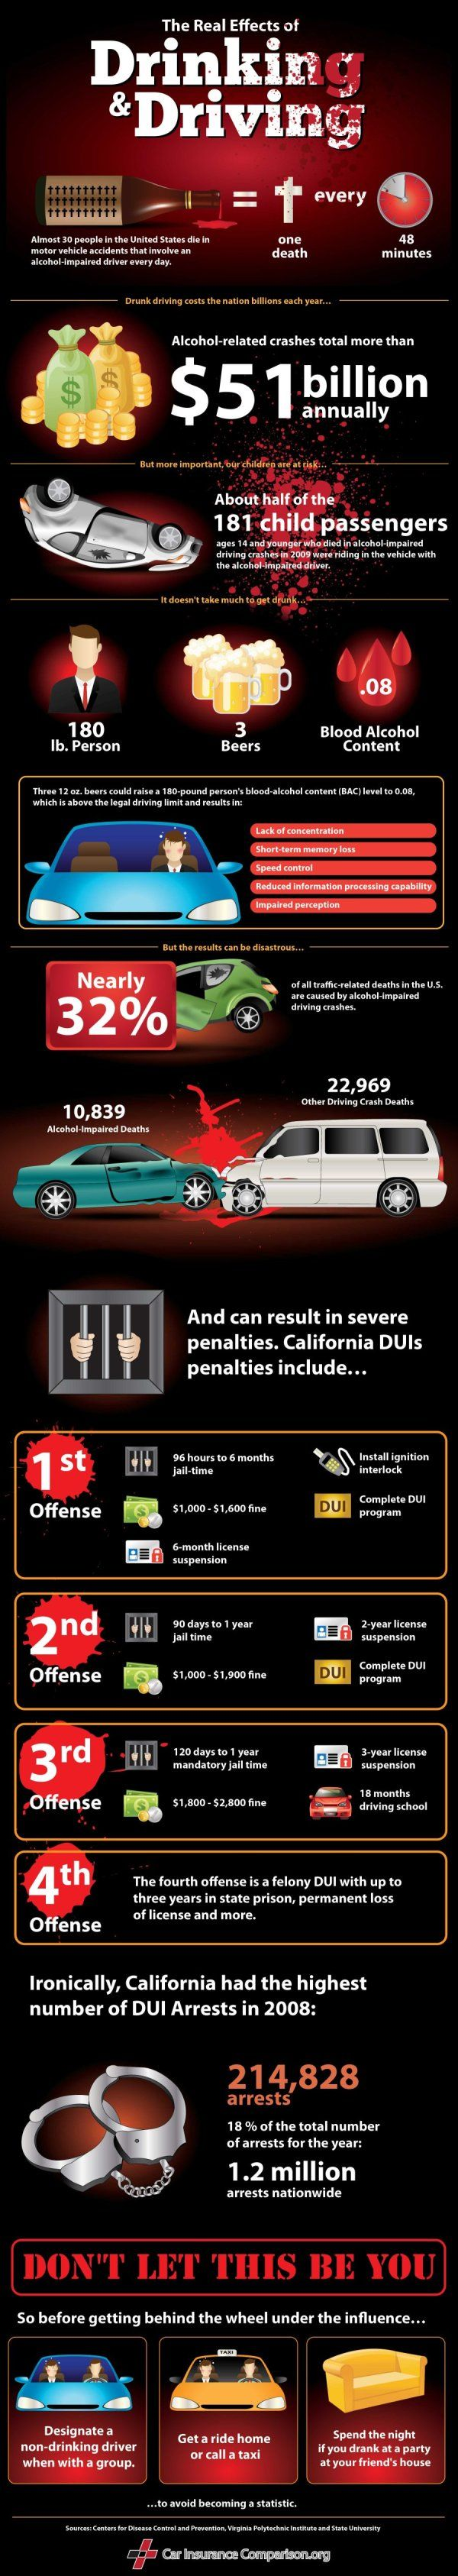 images about communications cars the zoo and this is advertising for information on drinking and driving but it just disgusts me that you can actually do this four times before being put in jail